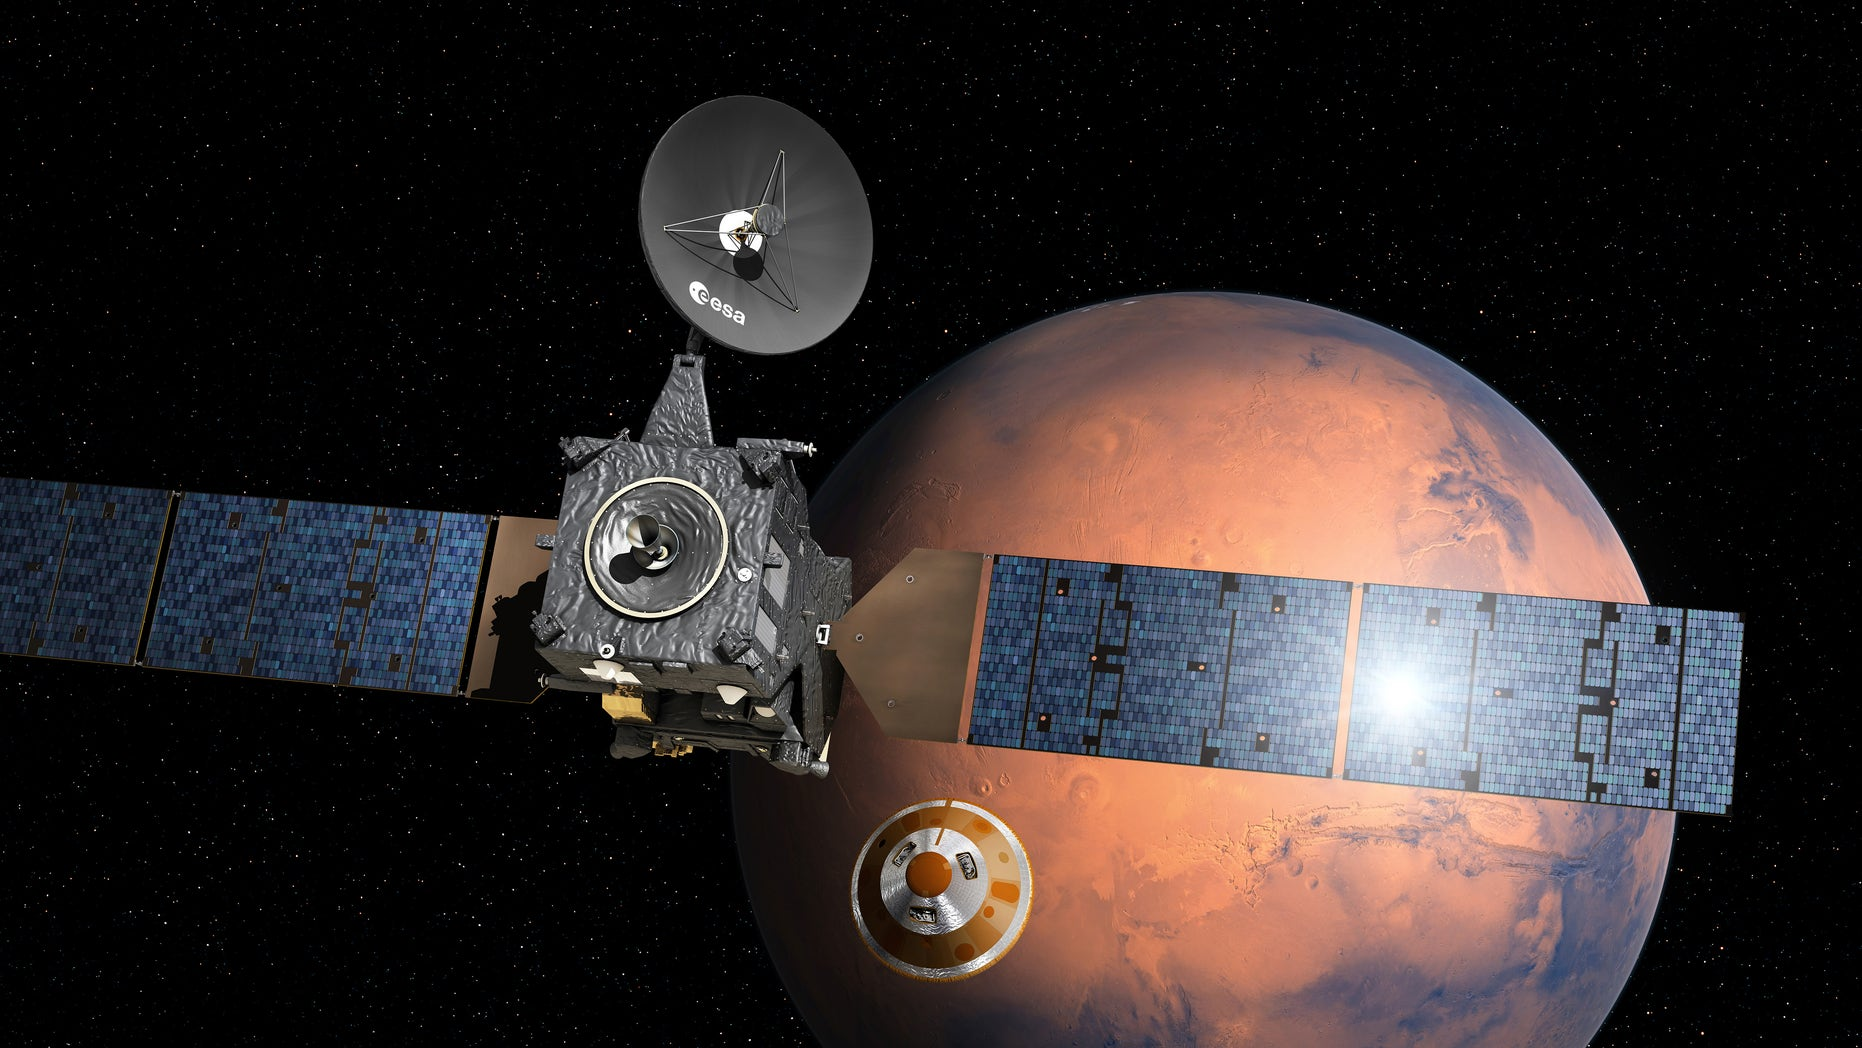 Artist''s impression provided by the European Space Agency, ESA, depicting the separation of the ExoMars 2016 entry, descent and landing demonstrator module, named Schiaparelli, center, from the Trace Gas Orbiter, TGO, left, and heading for Mars.